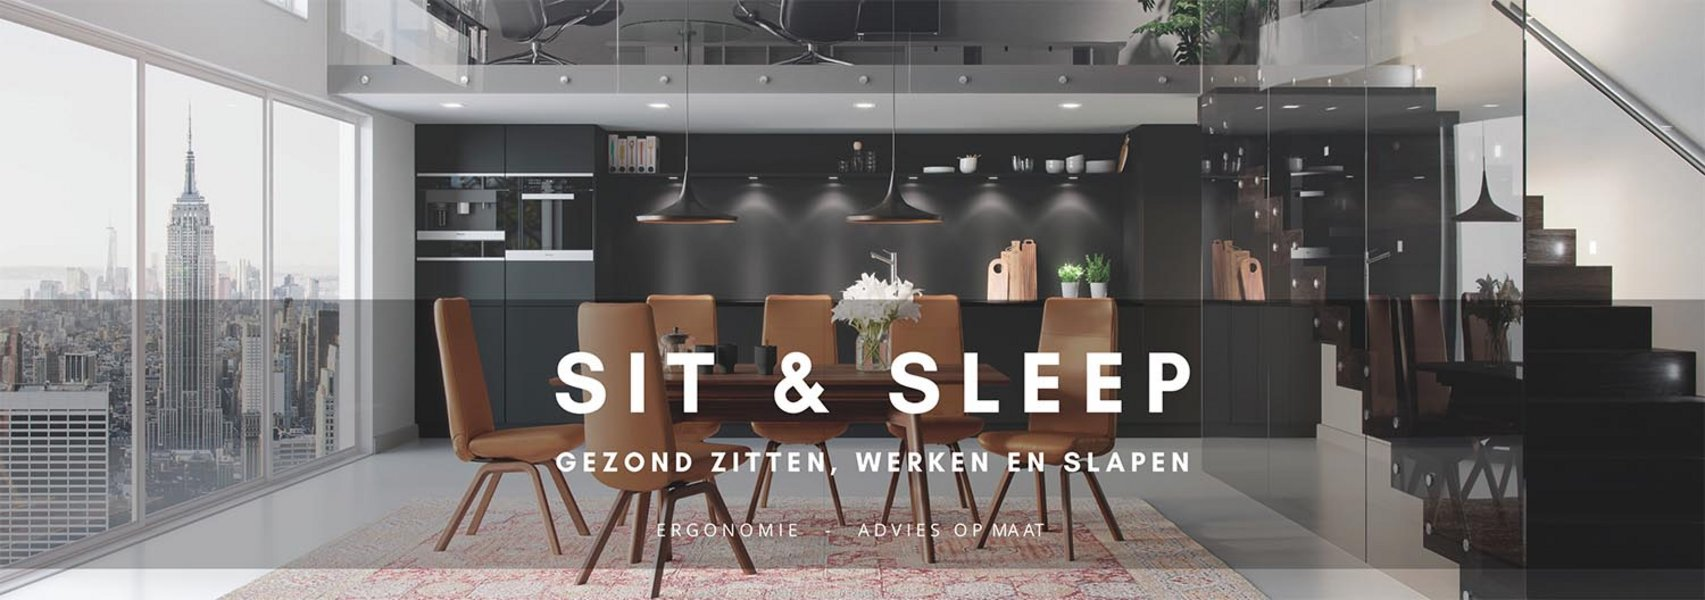 Header Sit and Sleep Hasselt in Hasselt